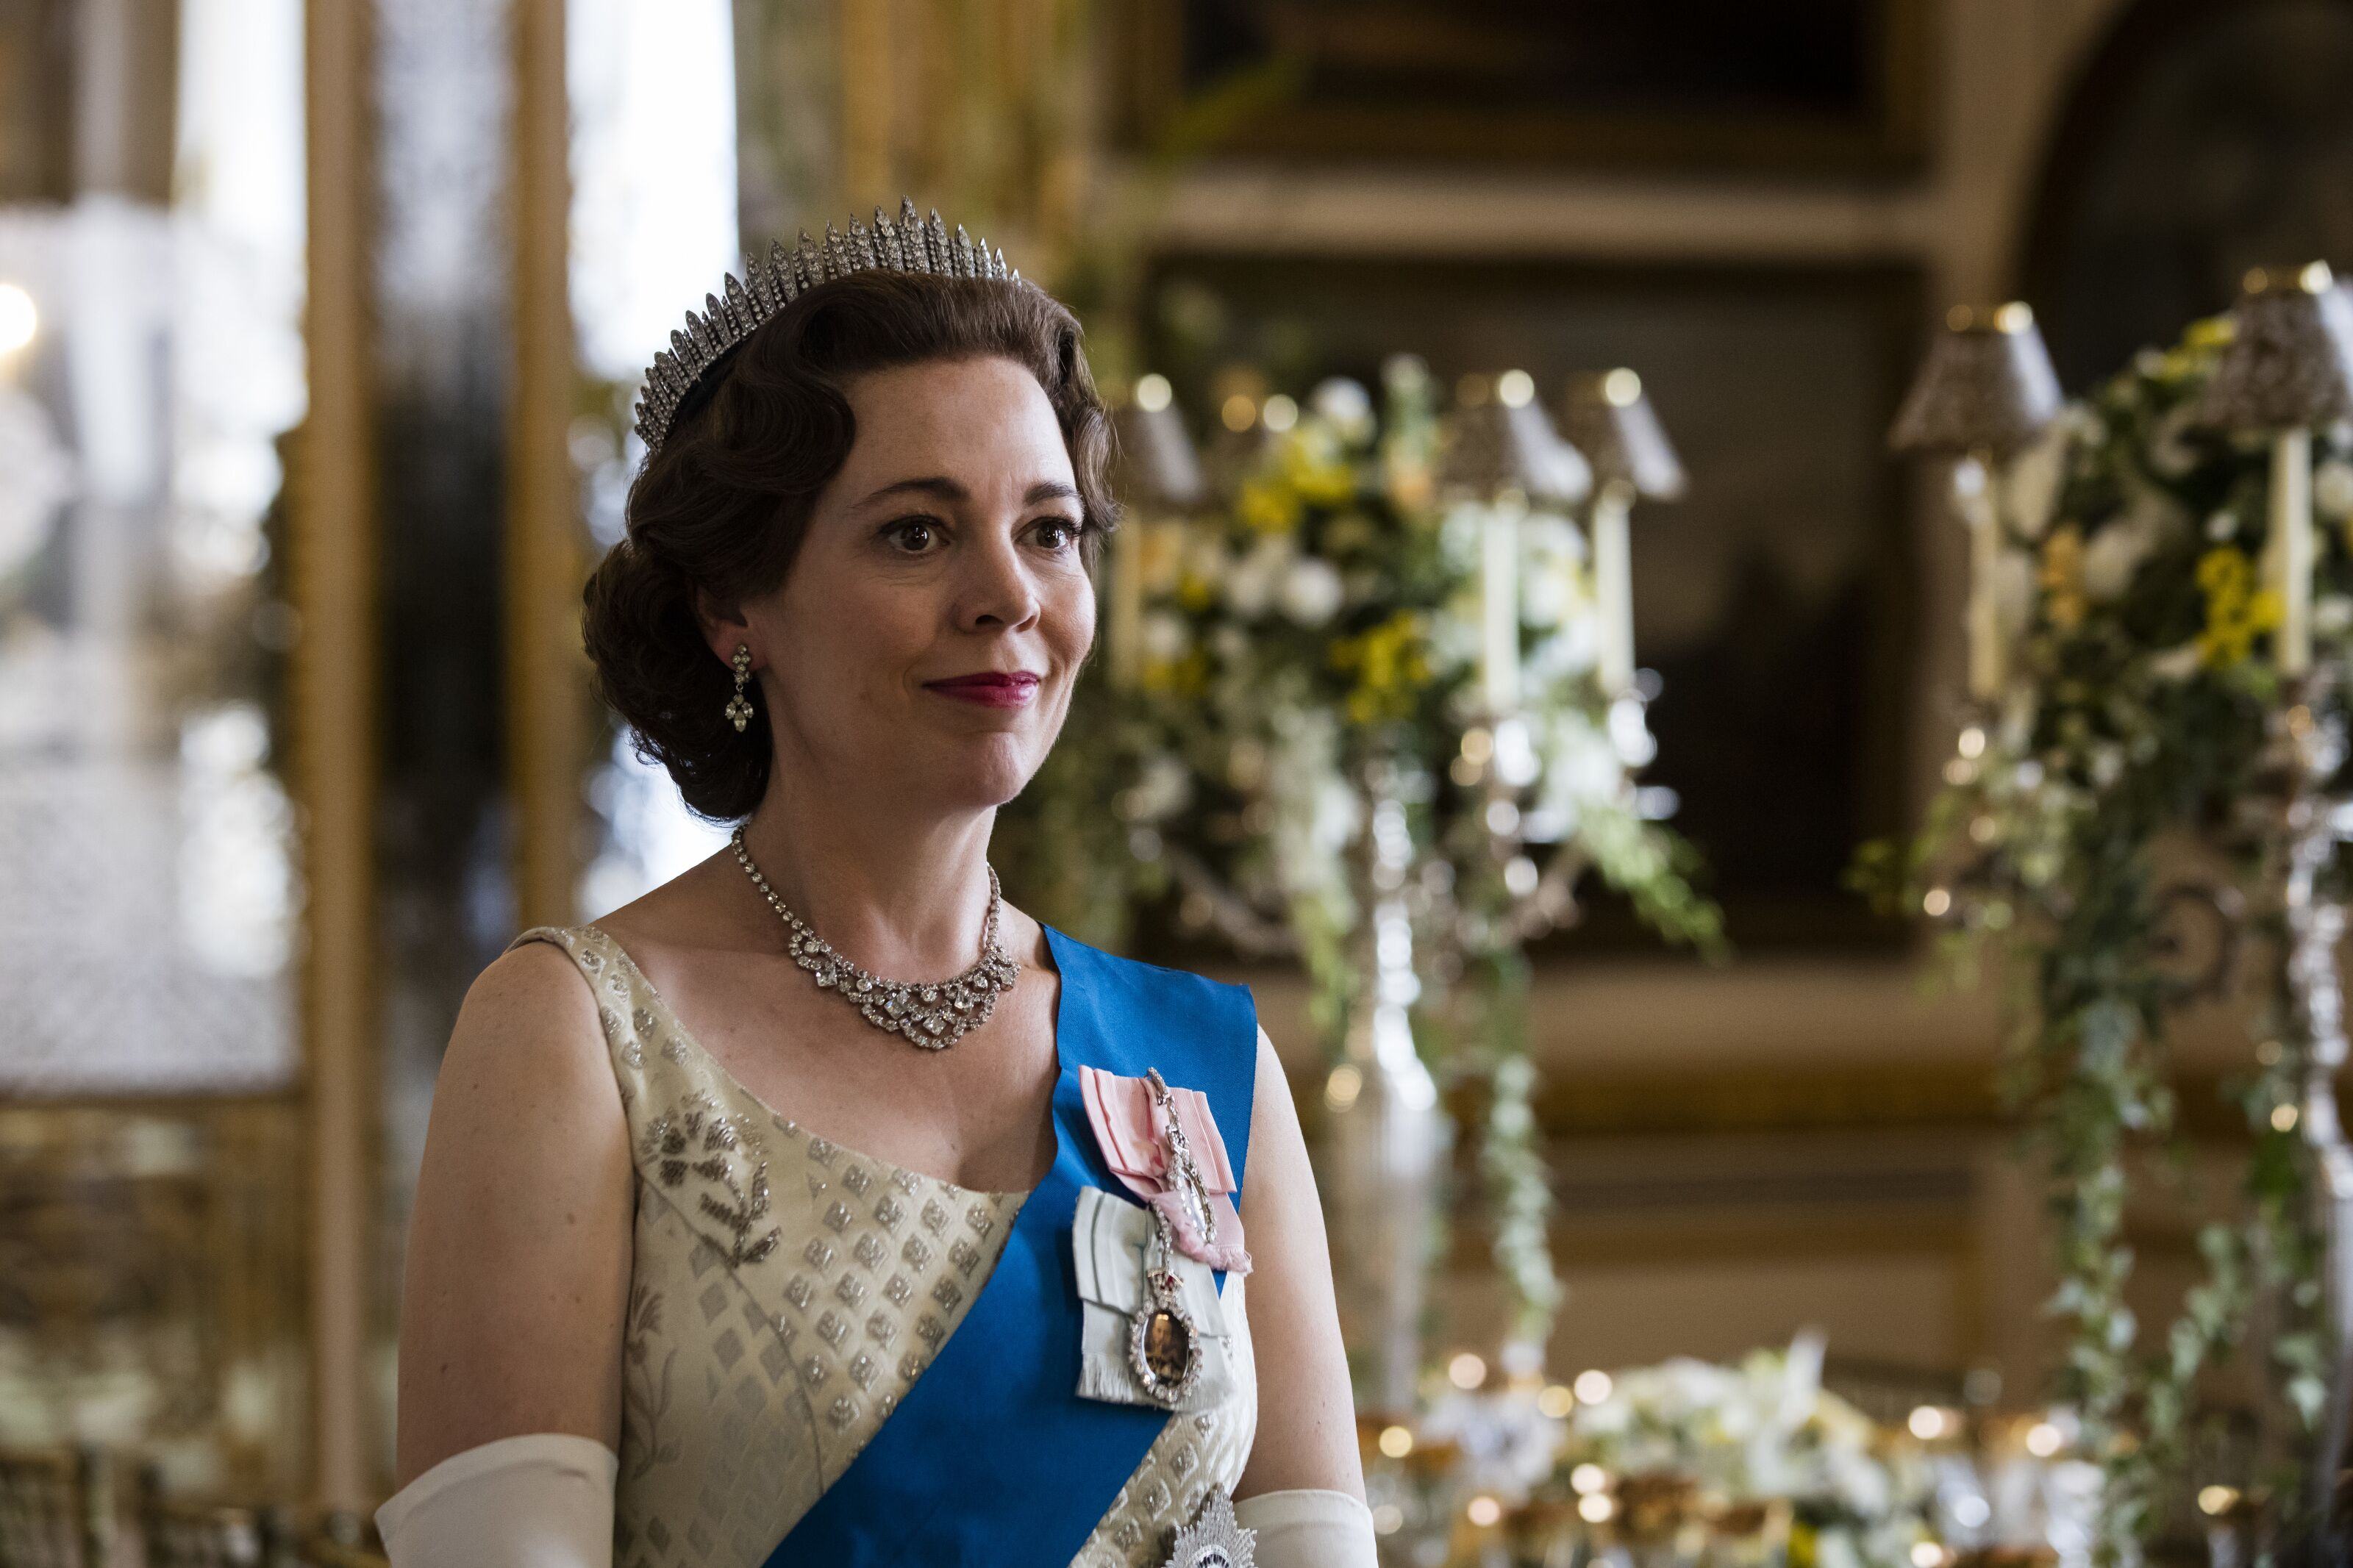 The Crown season 4: Release date and what happens next